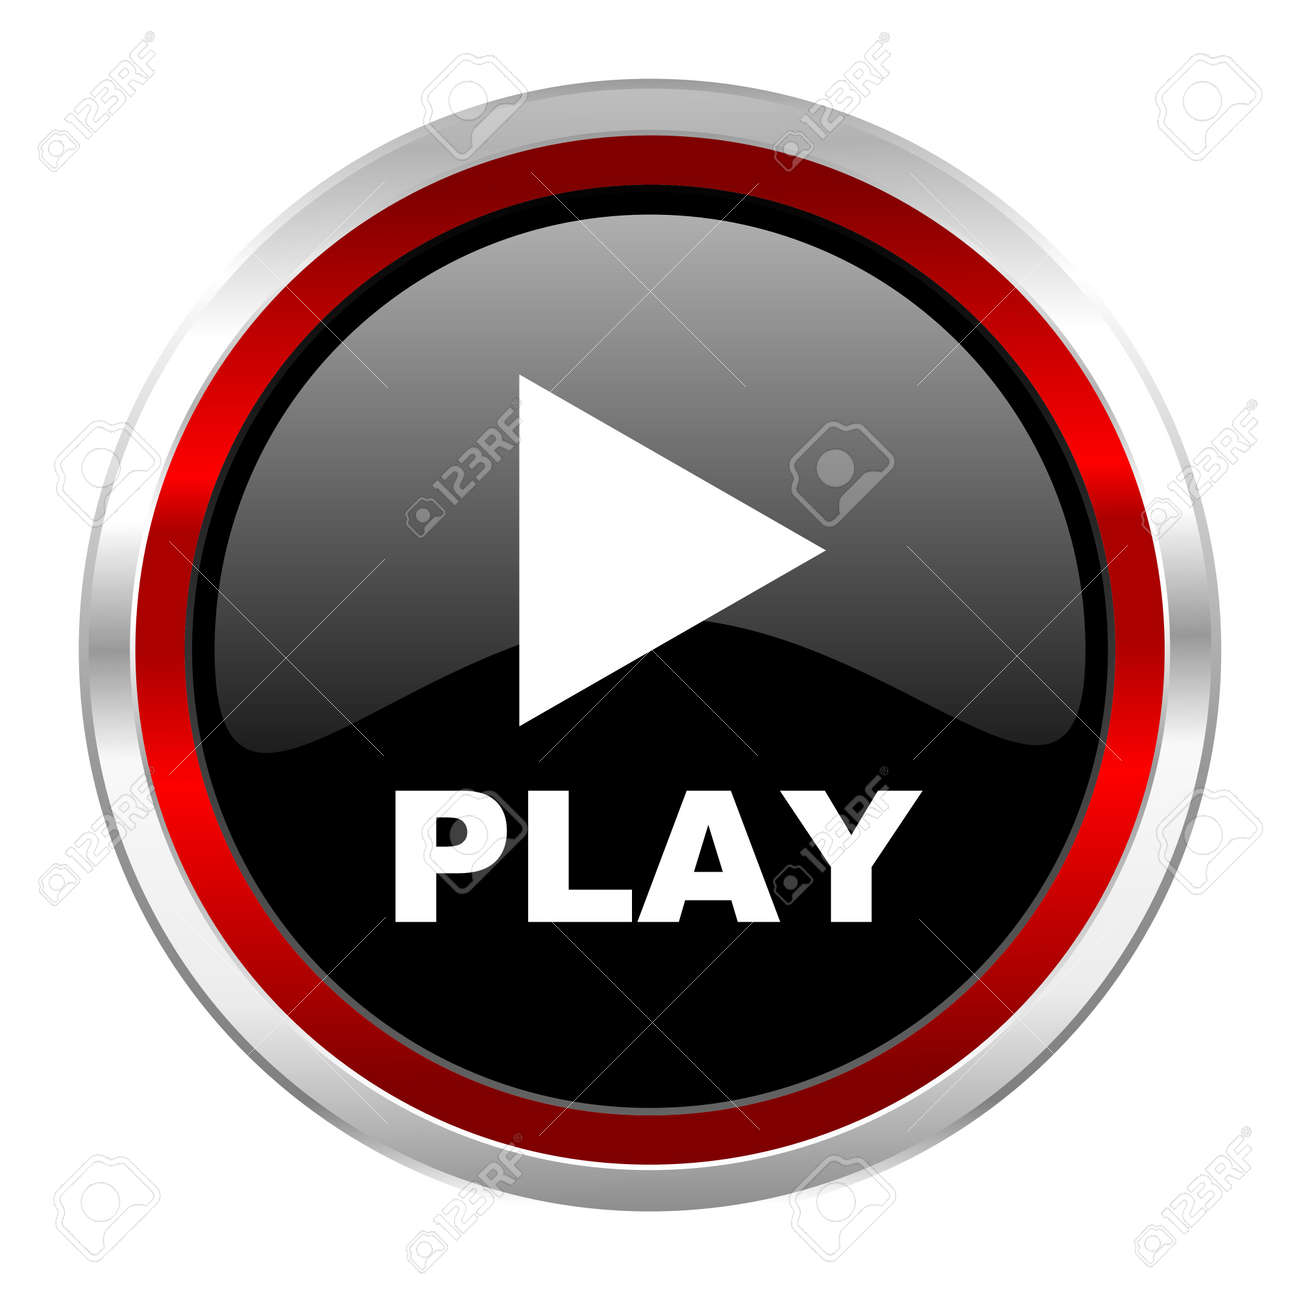 play icon Stock Photo - 21082999